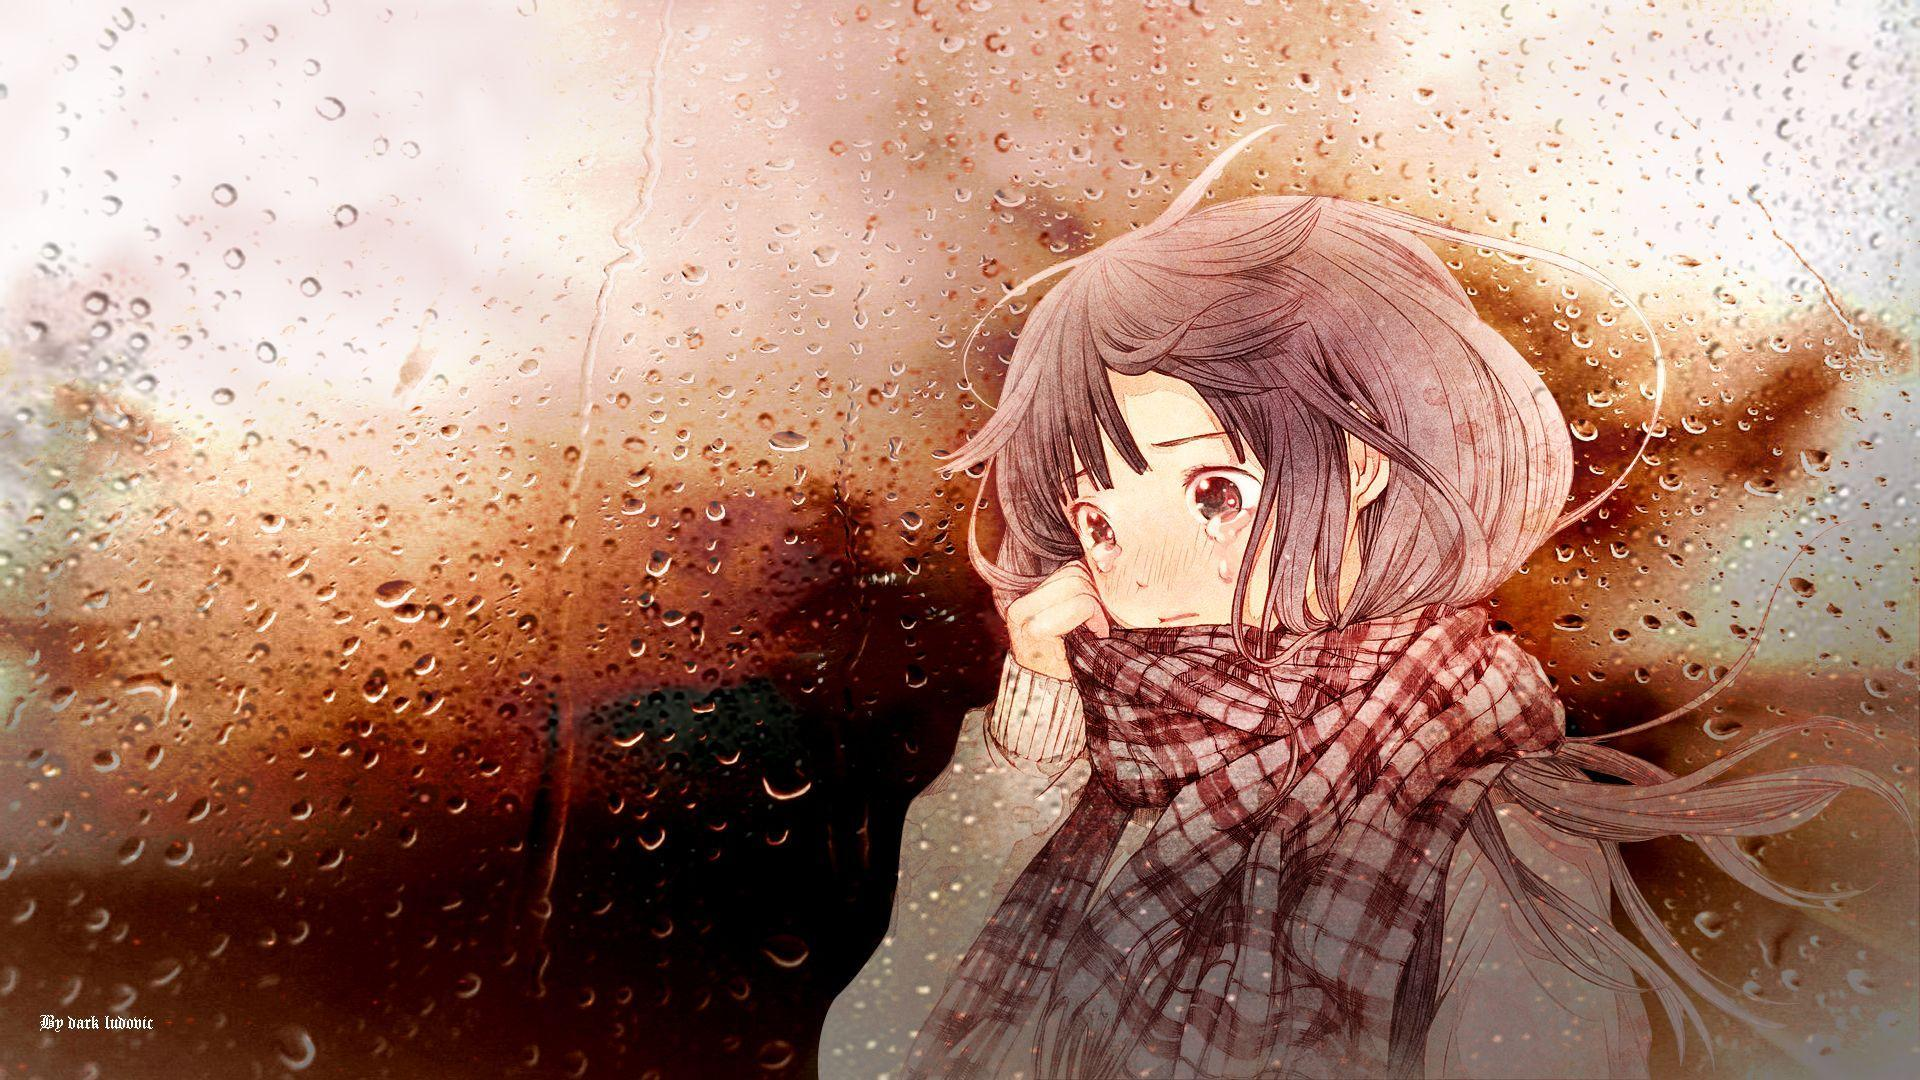 Www Sad Cute Girl Wallpaper Sad Anime Faces Wallpapers Wallpaper Cave